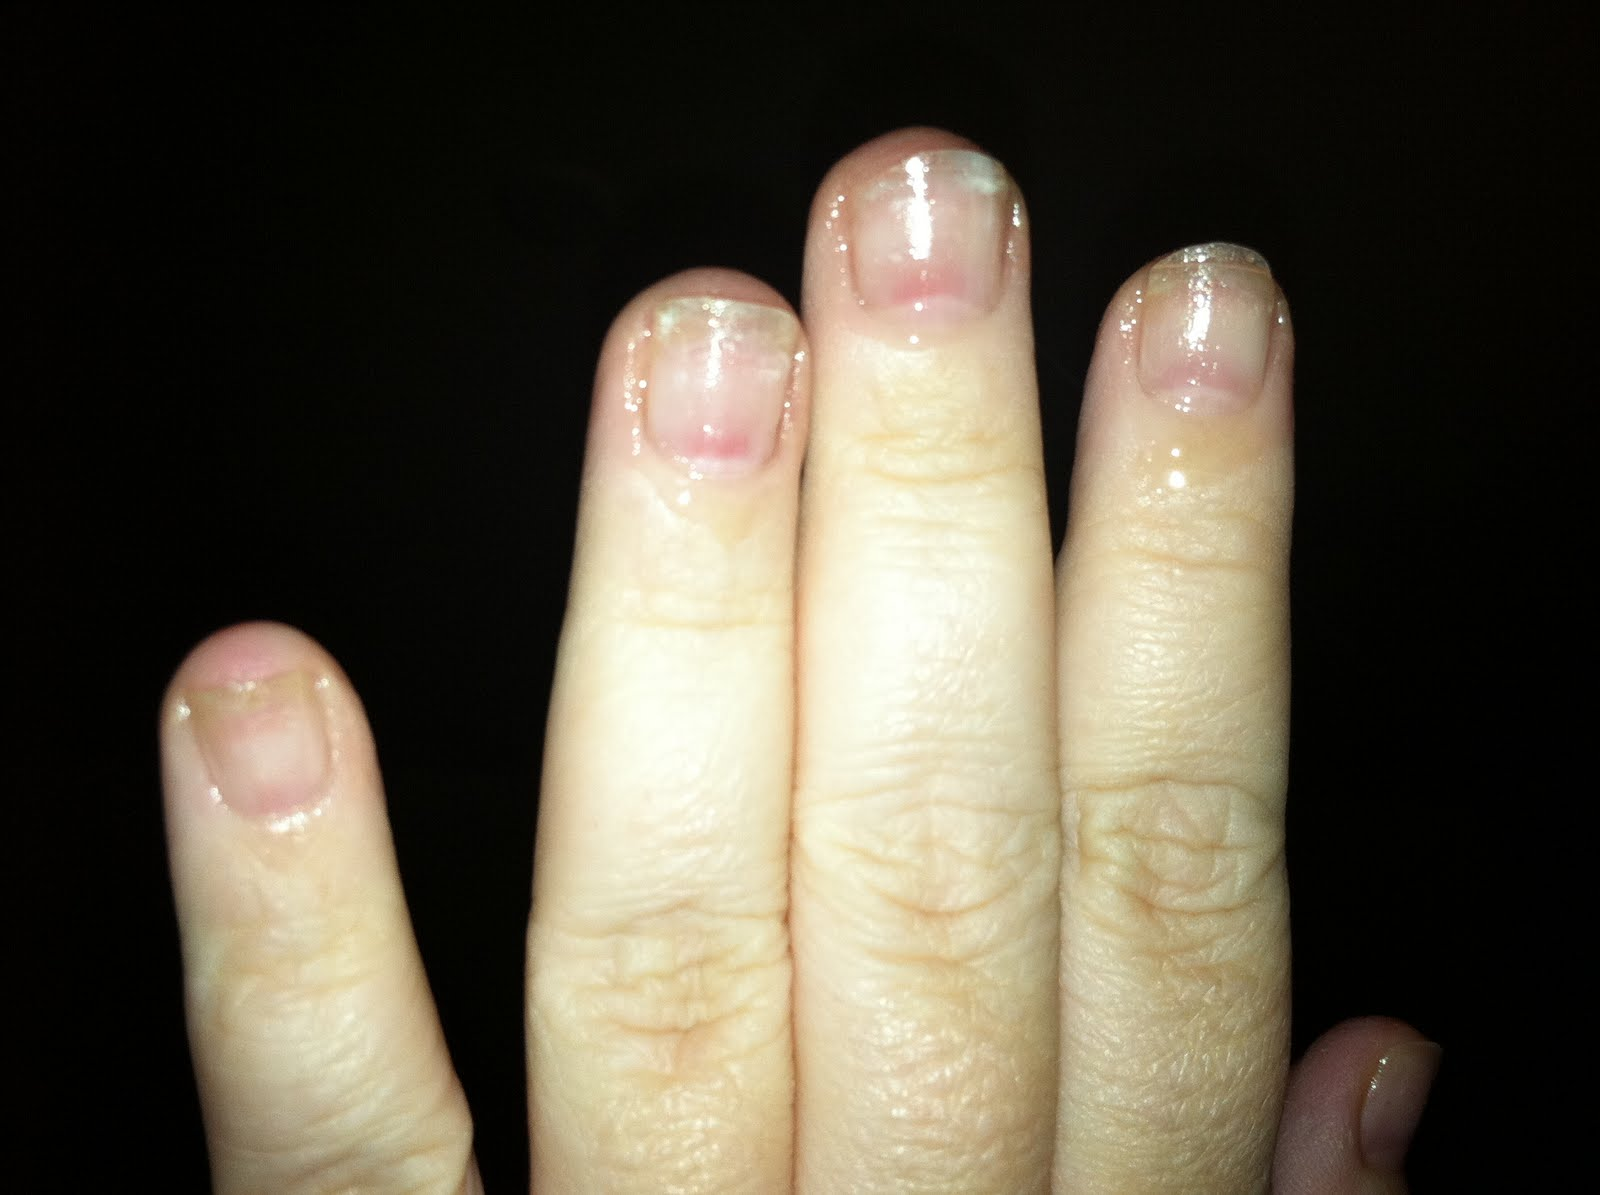 Tiny plastic fingernails: After glue on full cover nail removal